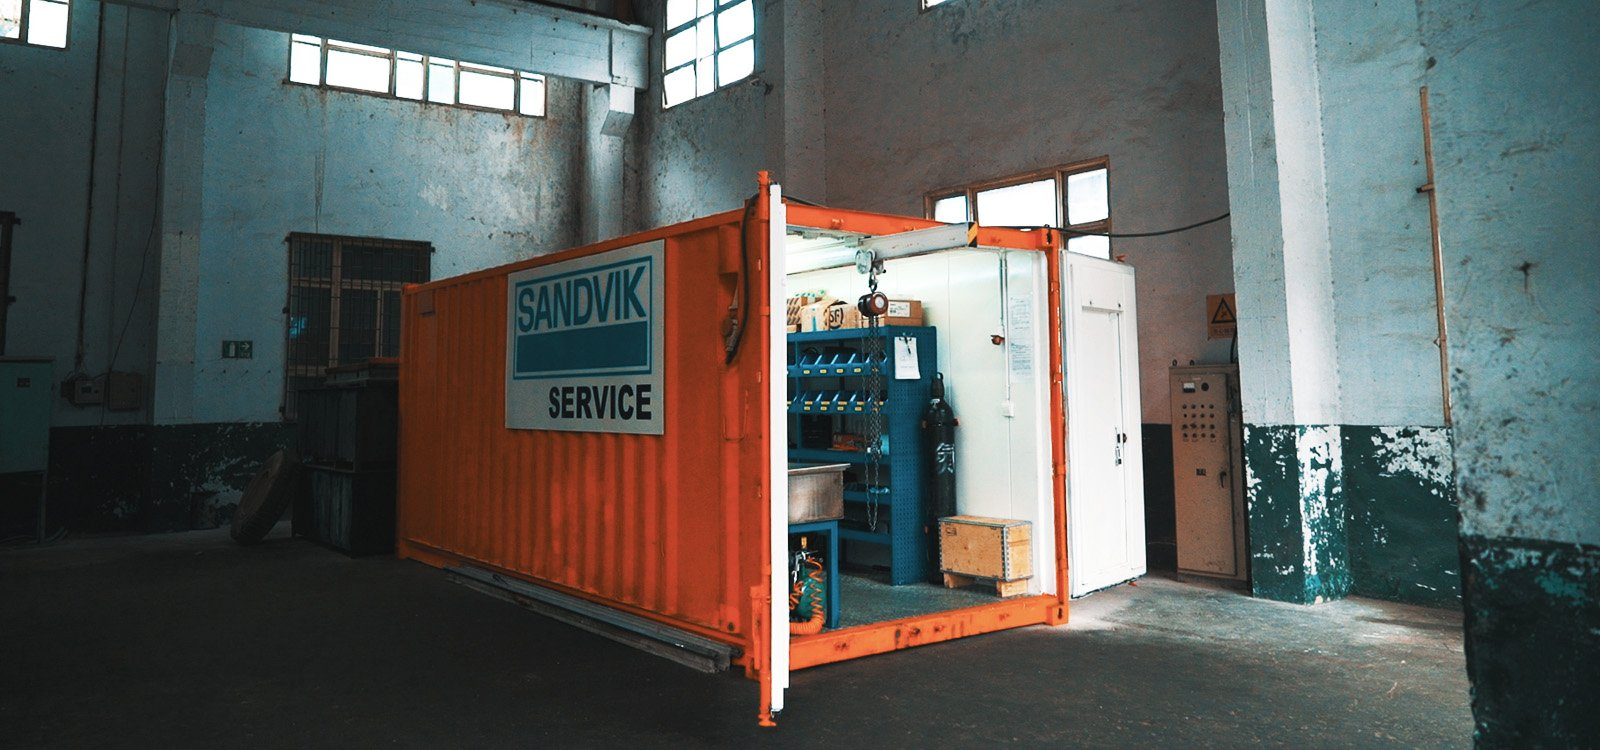 <p>The container, supplied by Sandvik, contains maintenance equipment and a workstation.</p>